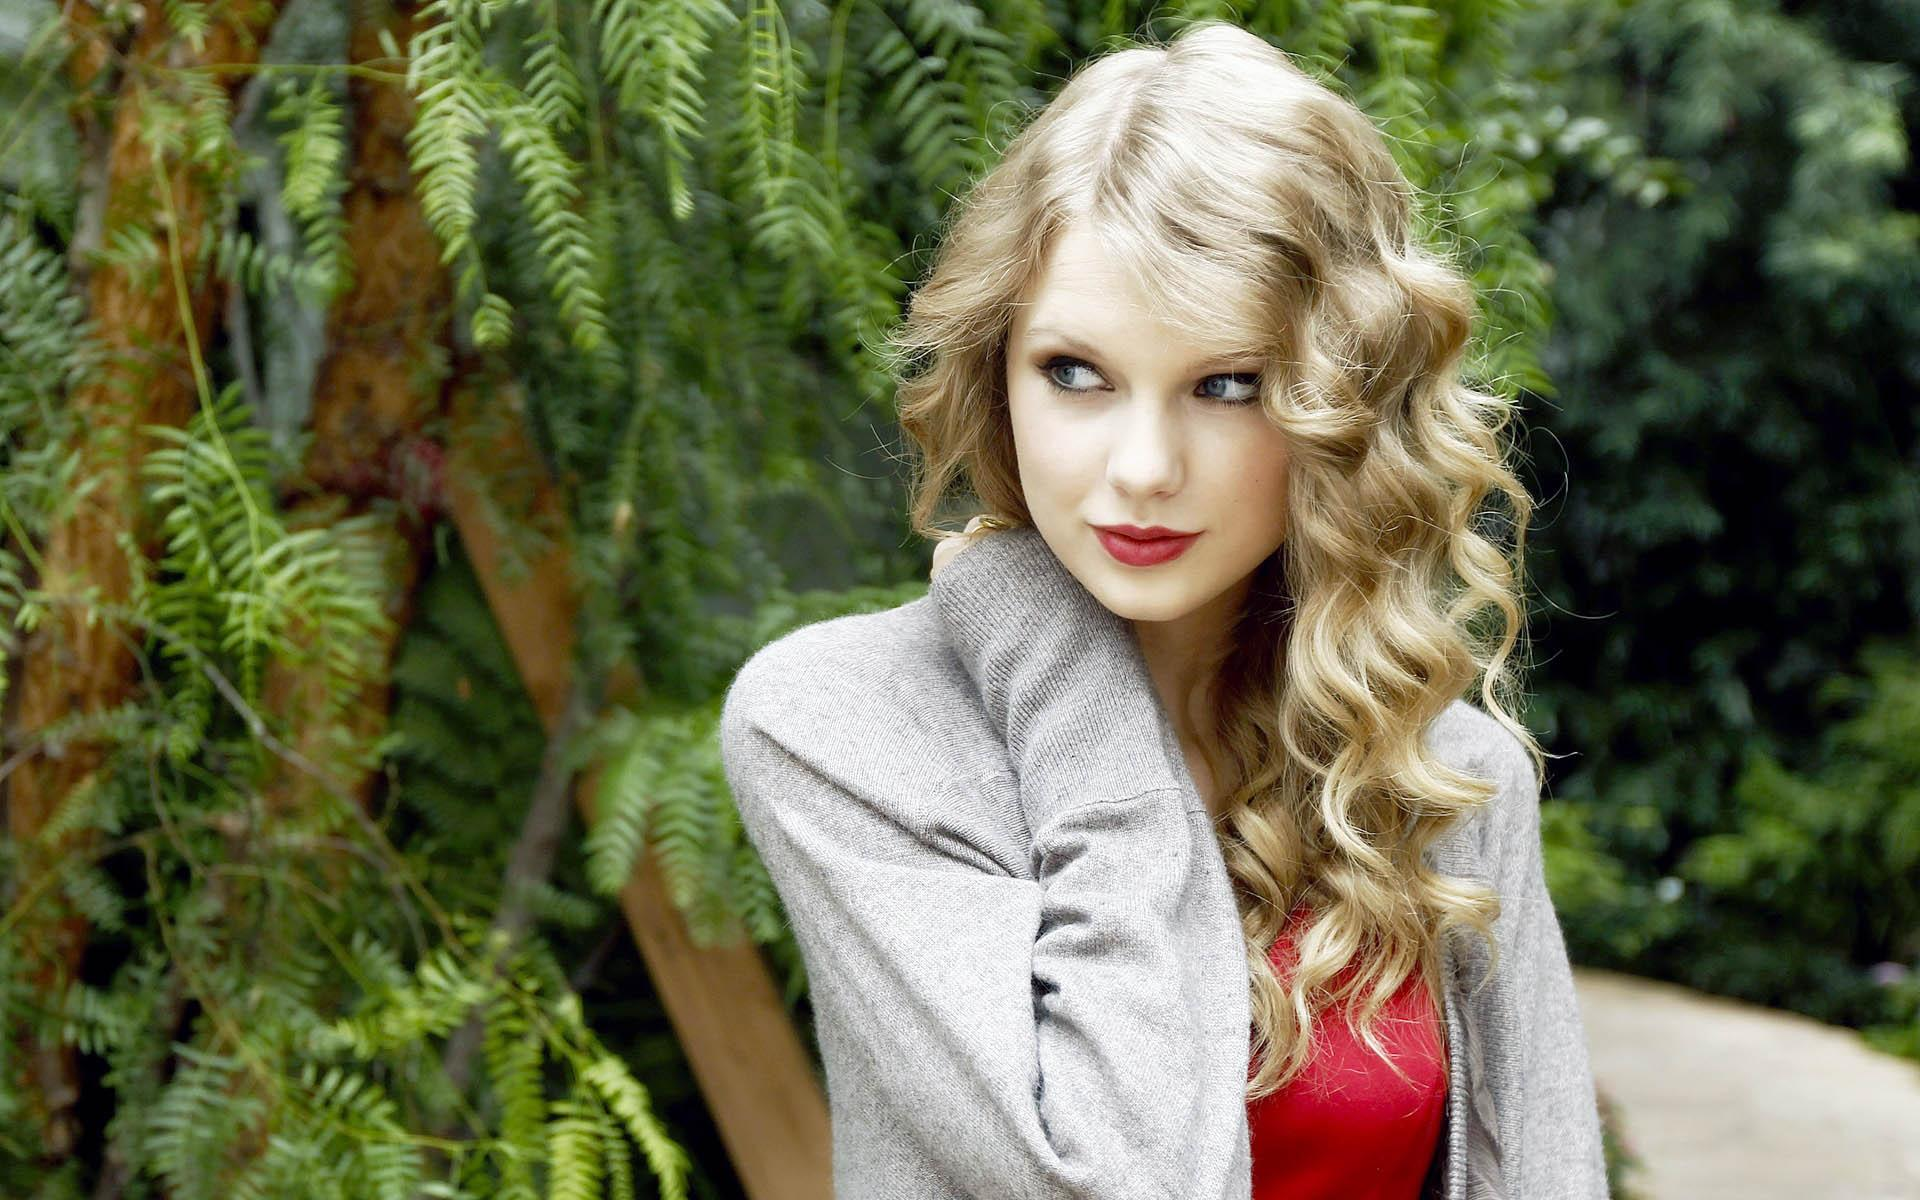 Taylor swift wallpapers wallpaper cave - Taylor swift wallpaper iphone ...